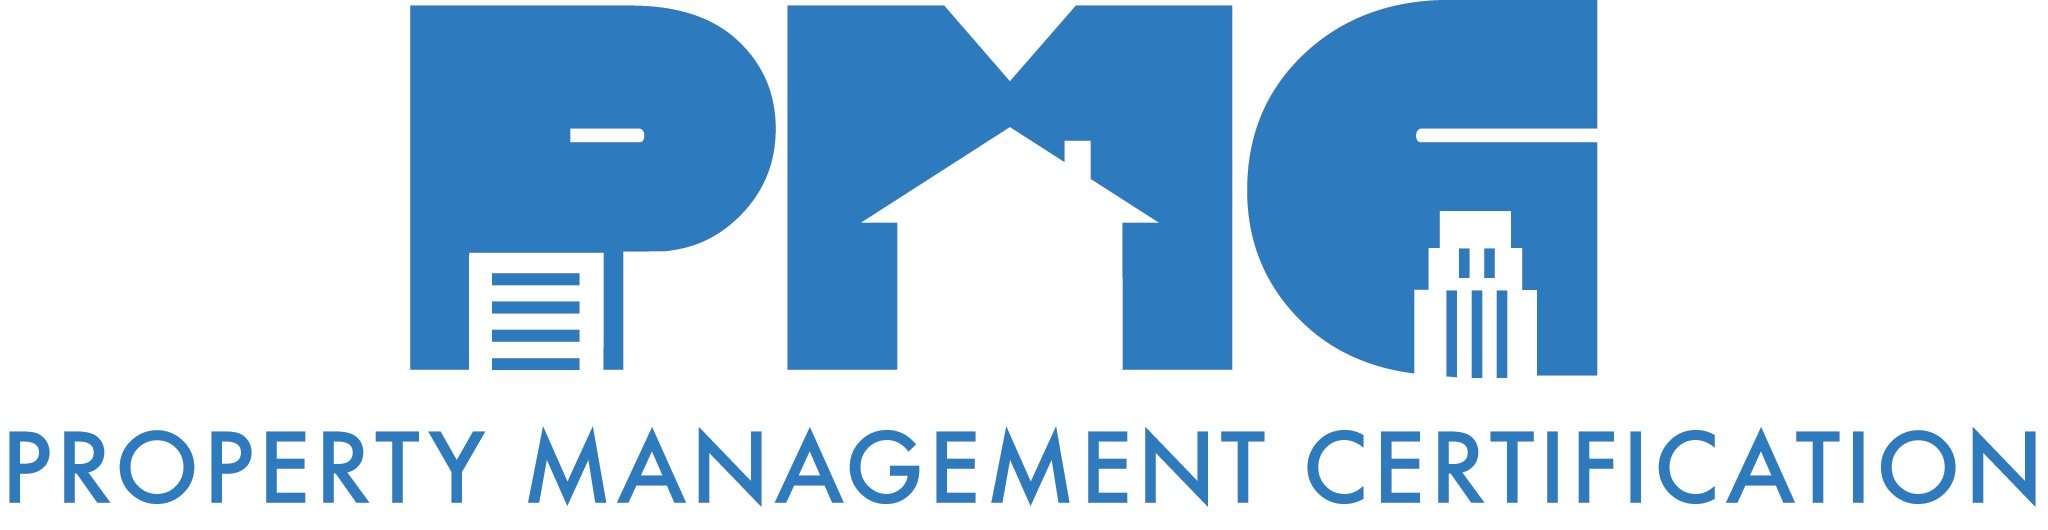 Property Management Certification Resource